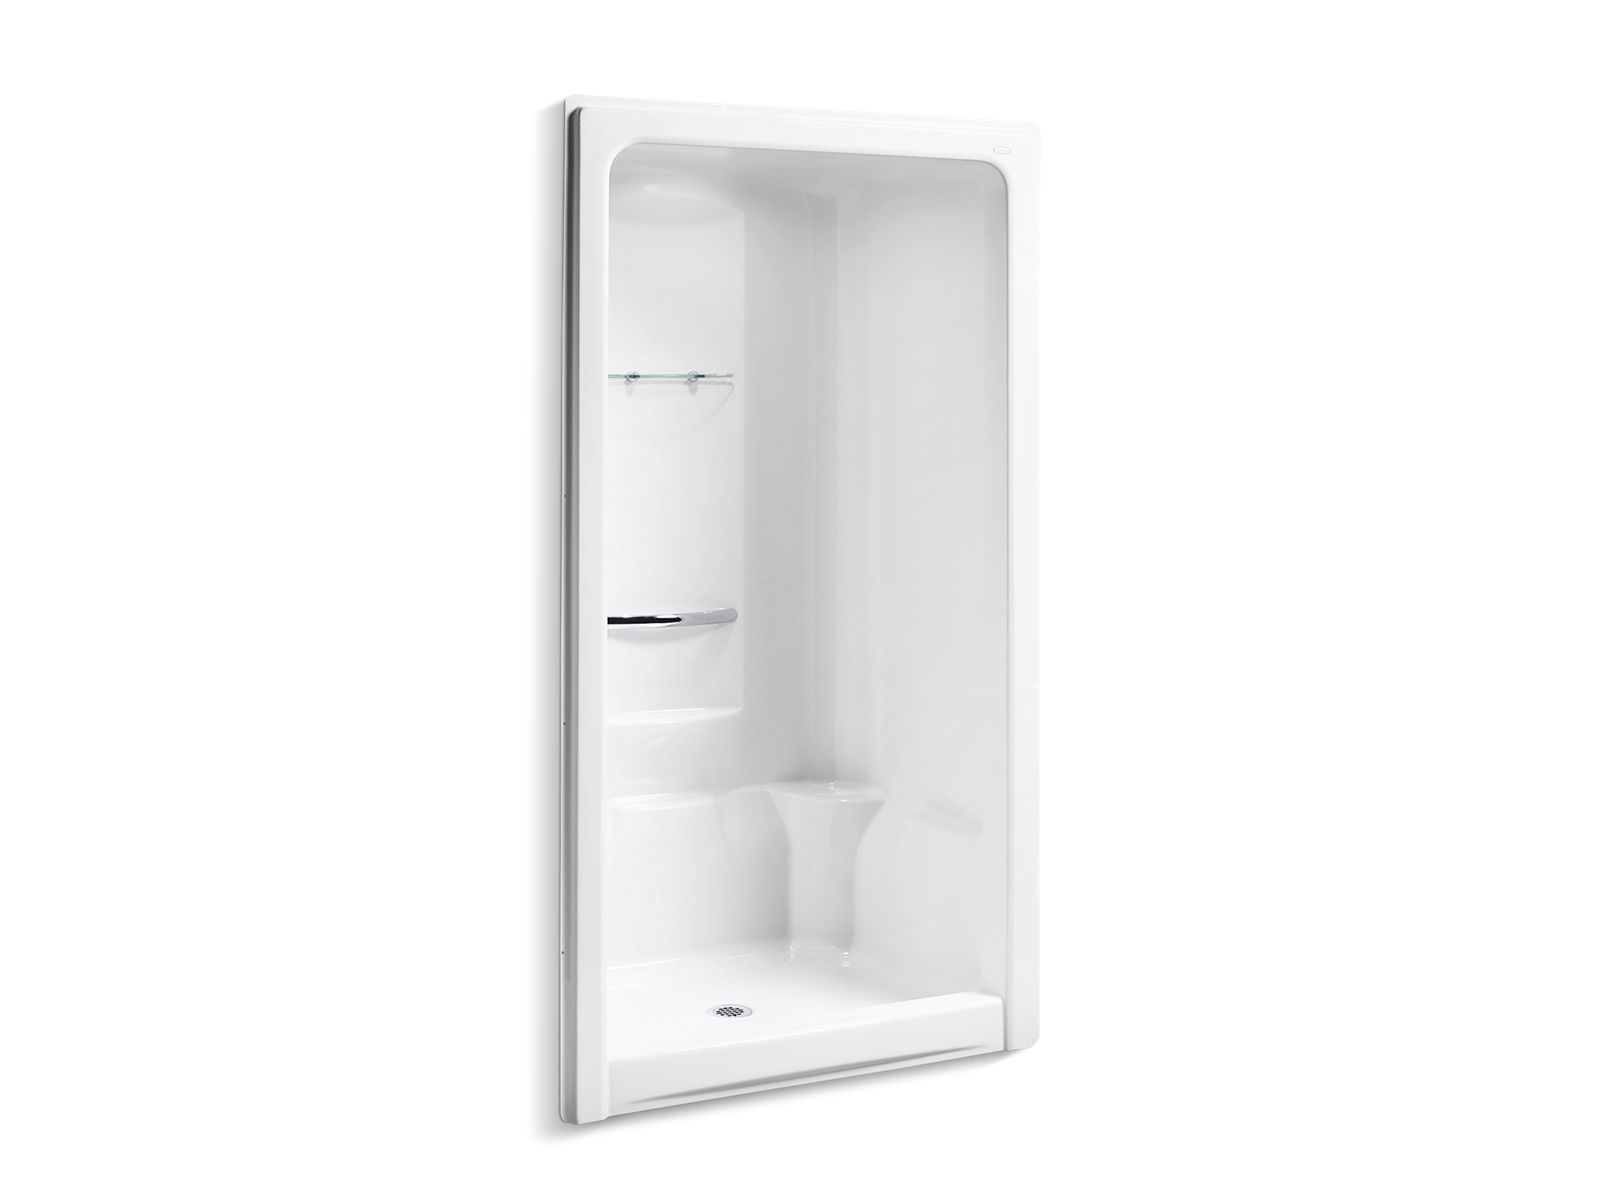 Sonata 4 Foot Shower Stall | K 1687 | KOHLER